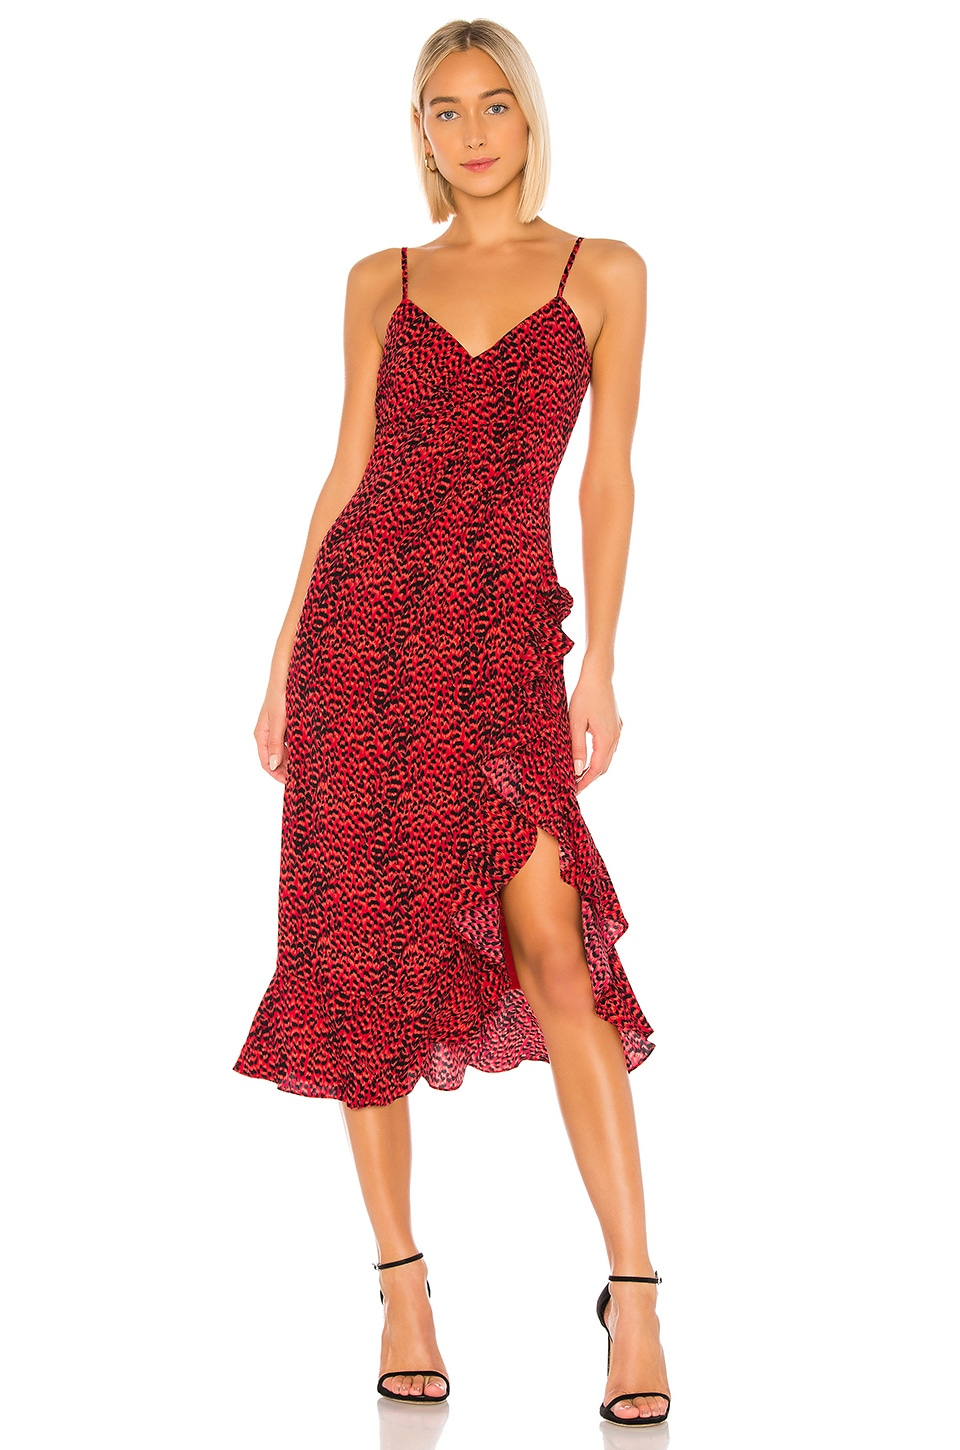 Bardot Lexie Midi Dress in Red Leopard